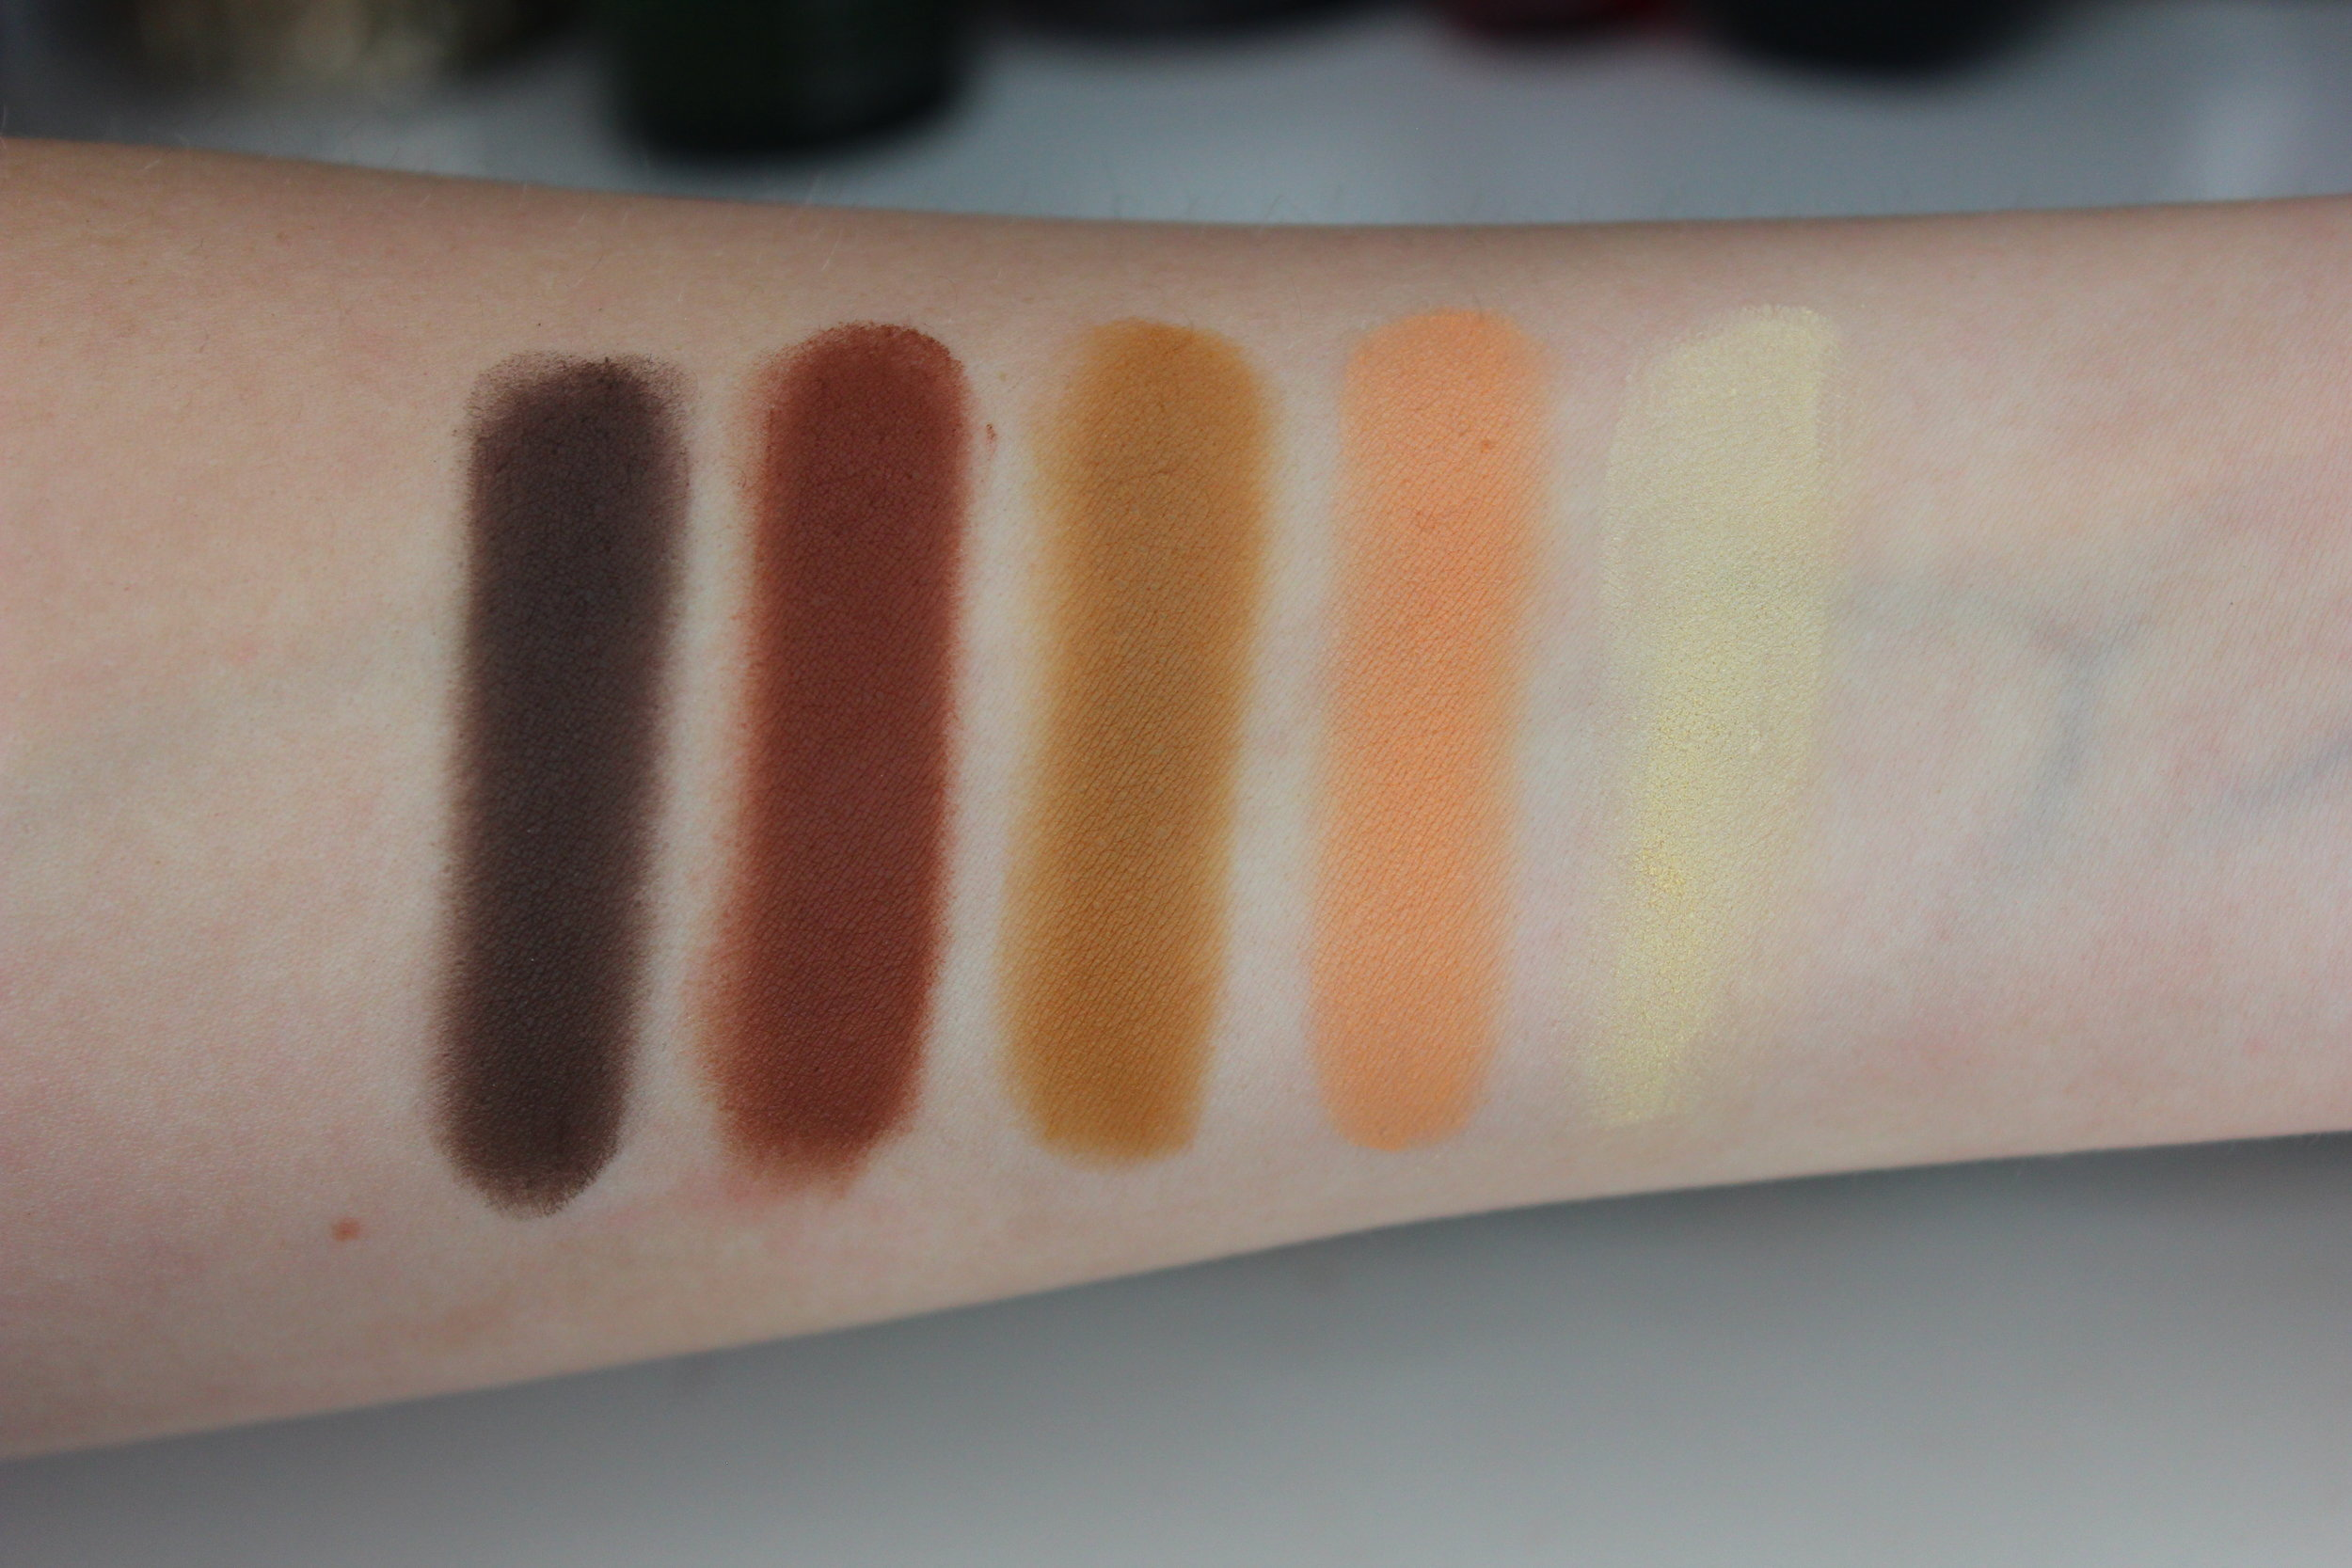 Melt Cosmetics Rust eyeshadow Stack review and swatches